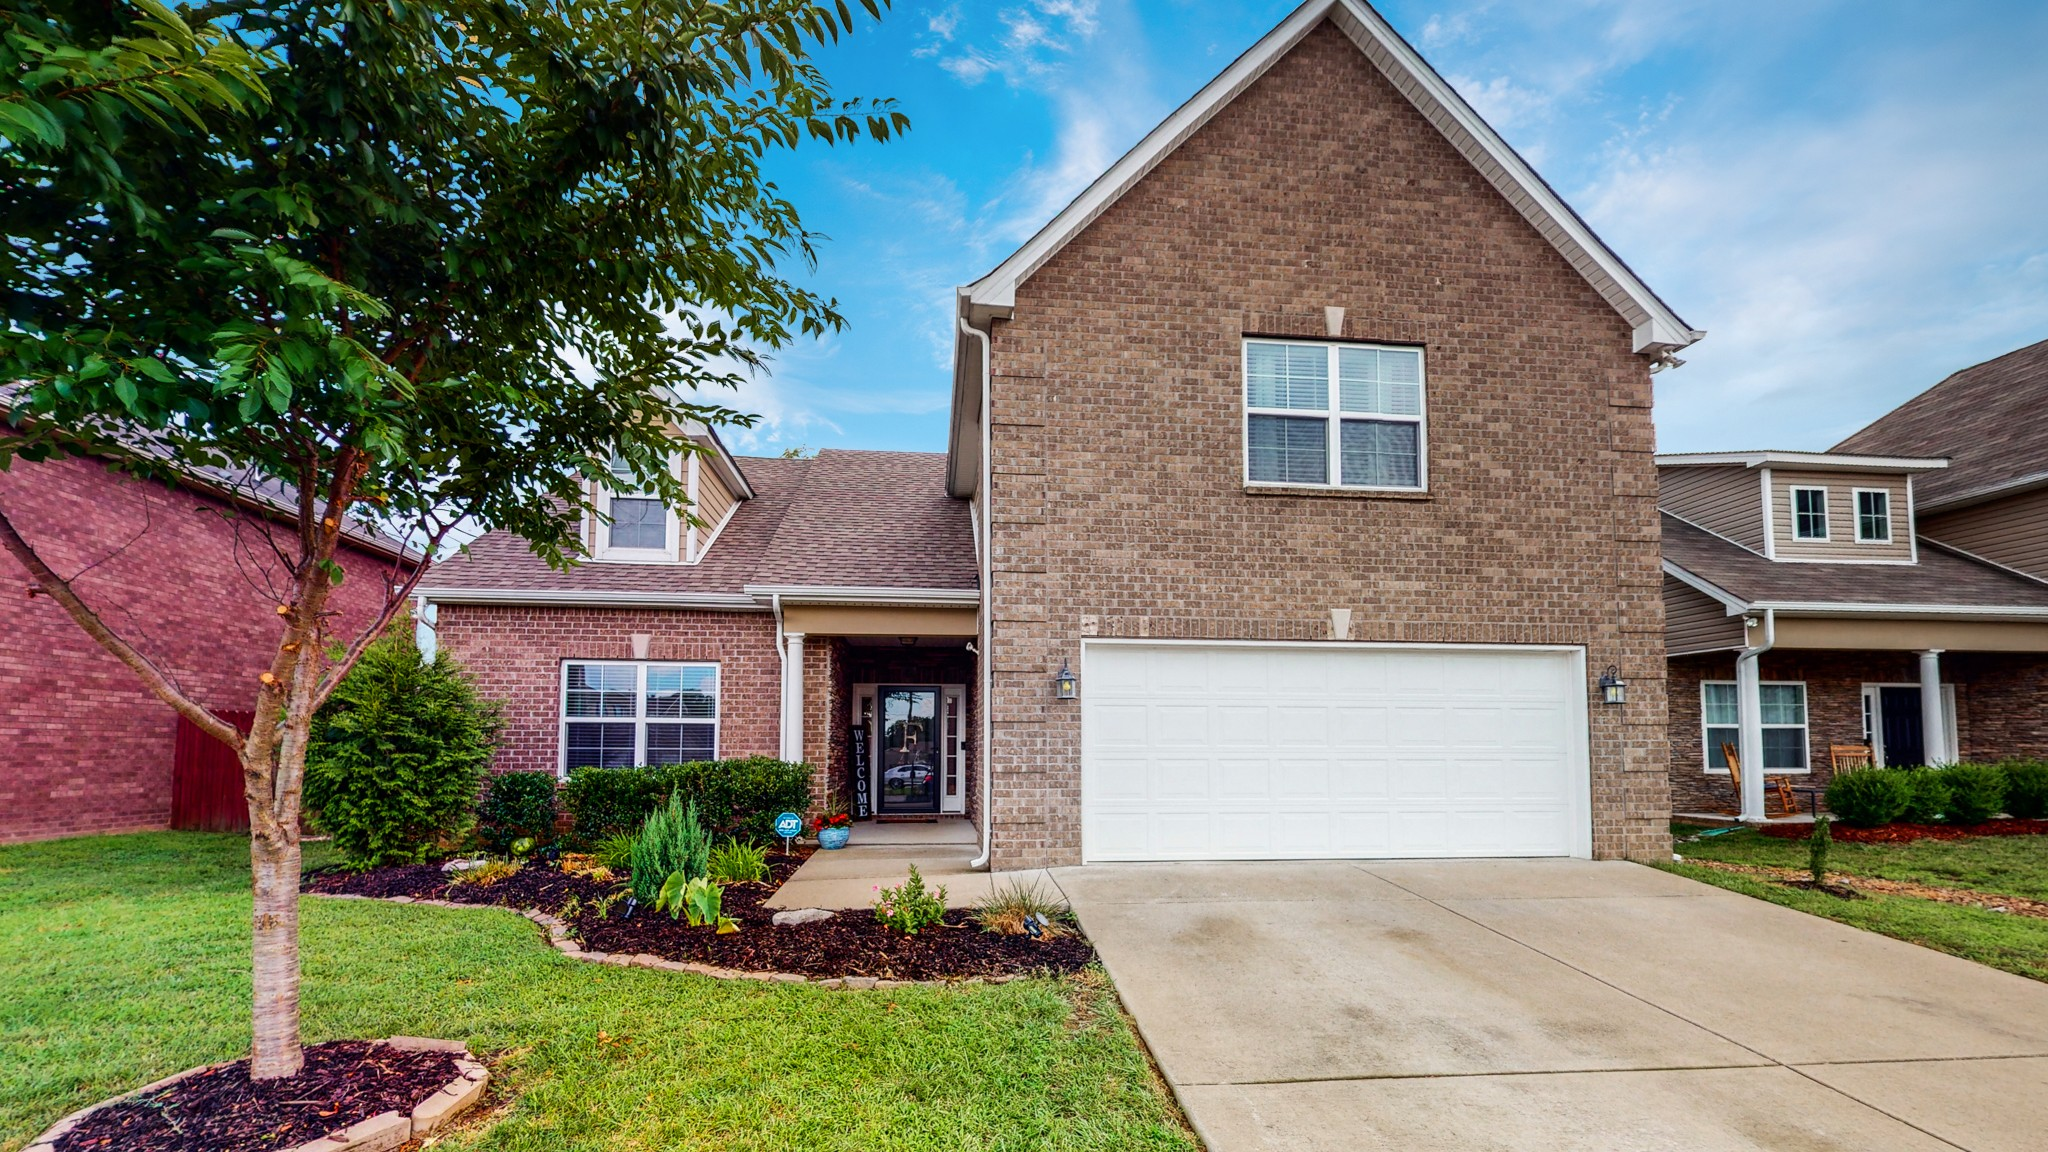 525 Shoreline Lane Property Photo - Antioch, TN real estate listing